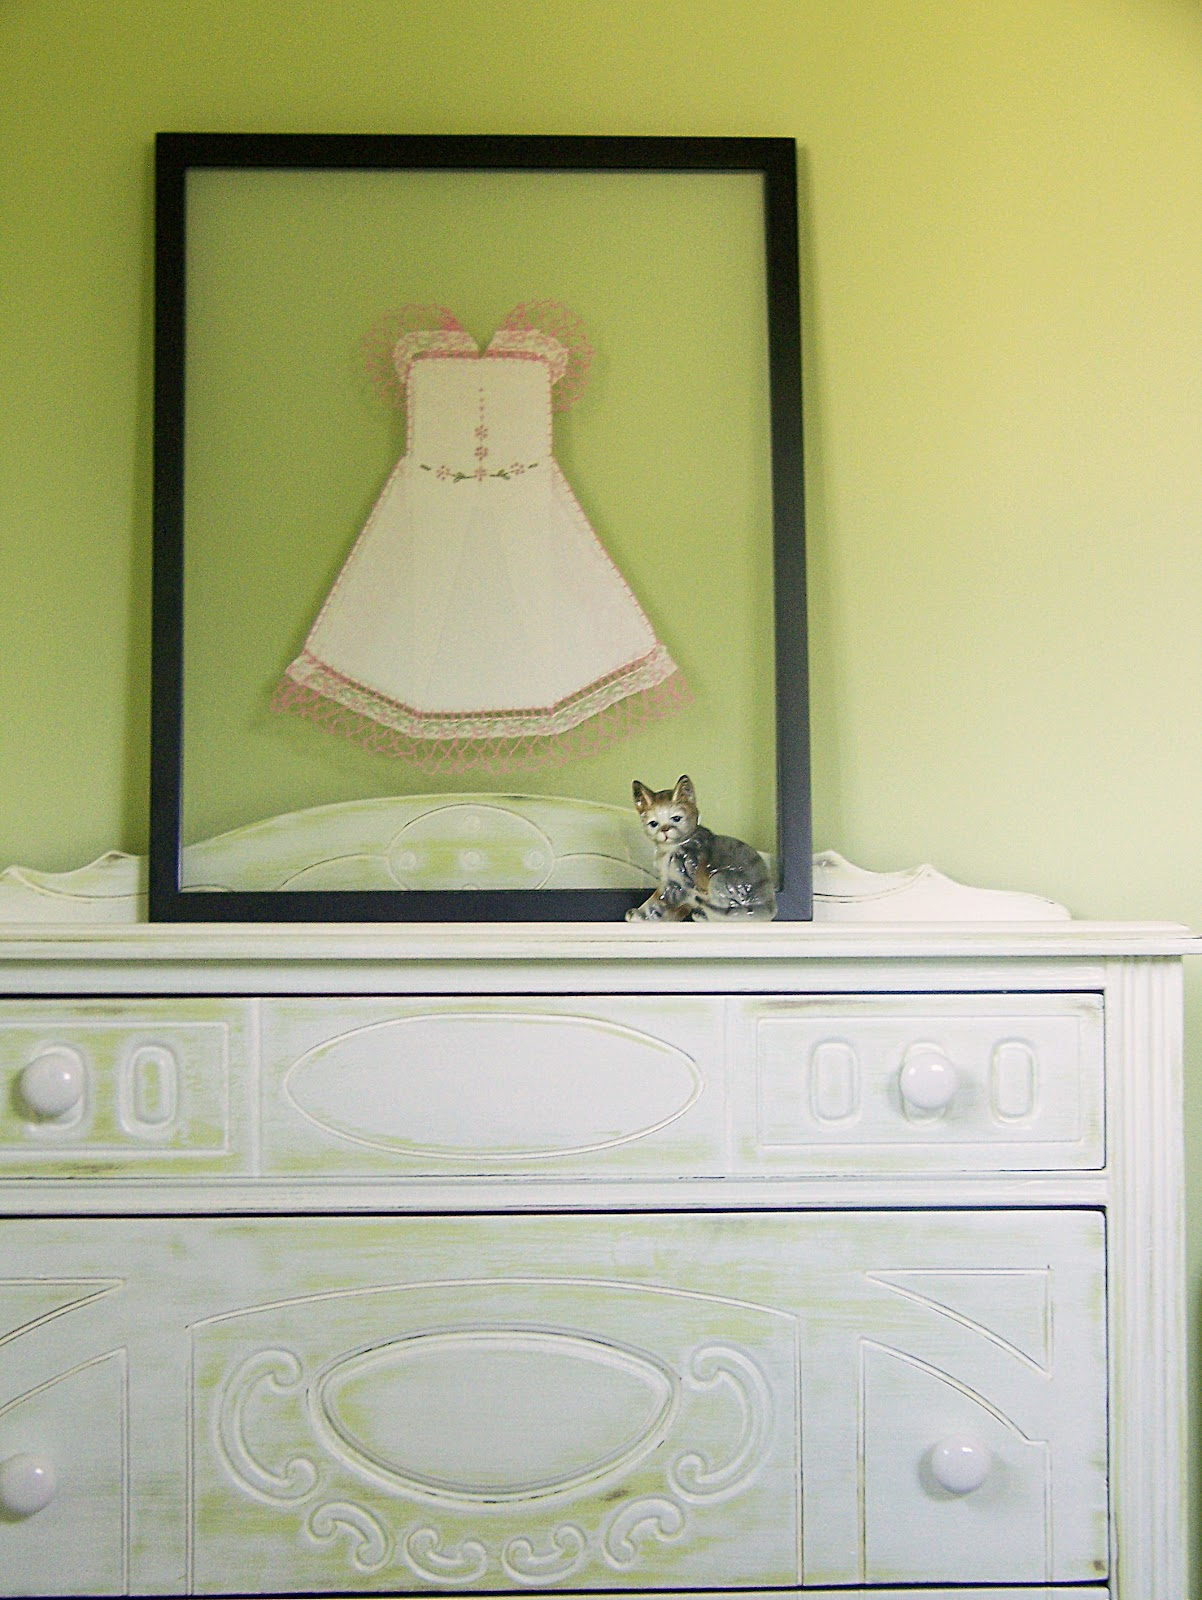 The Hanky Dress Lady: Display a Hanky Dress in a See-Through Frame